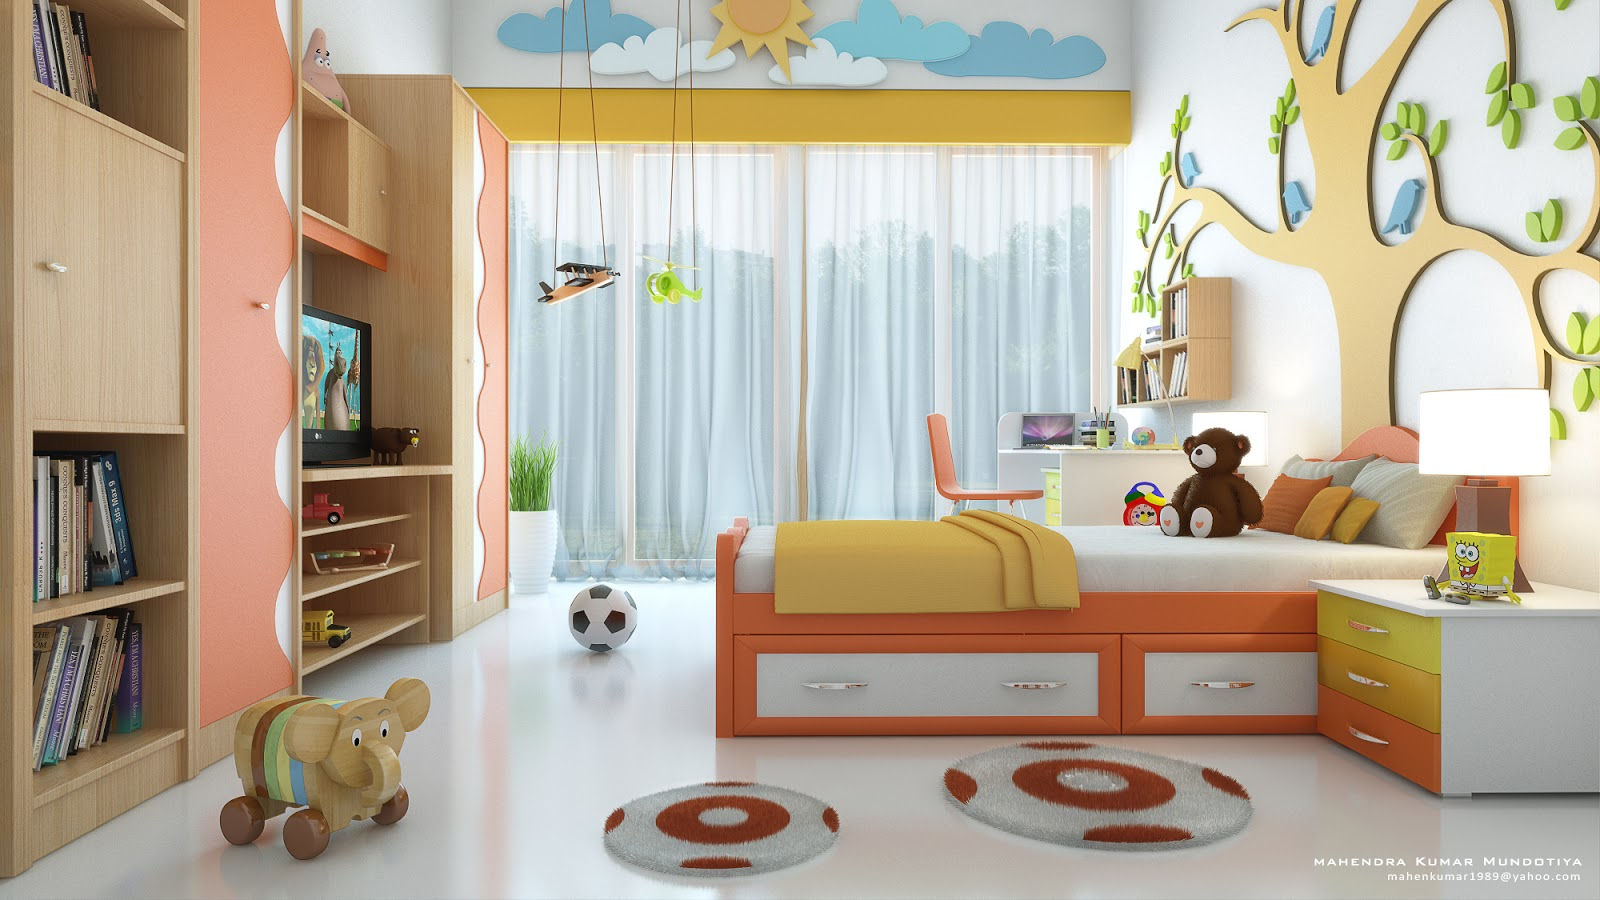 Mahen thinks kid 39 s room for Rooms 4 kids